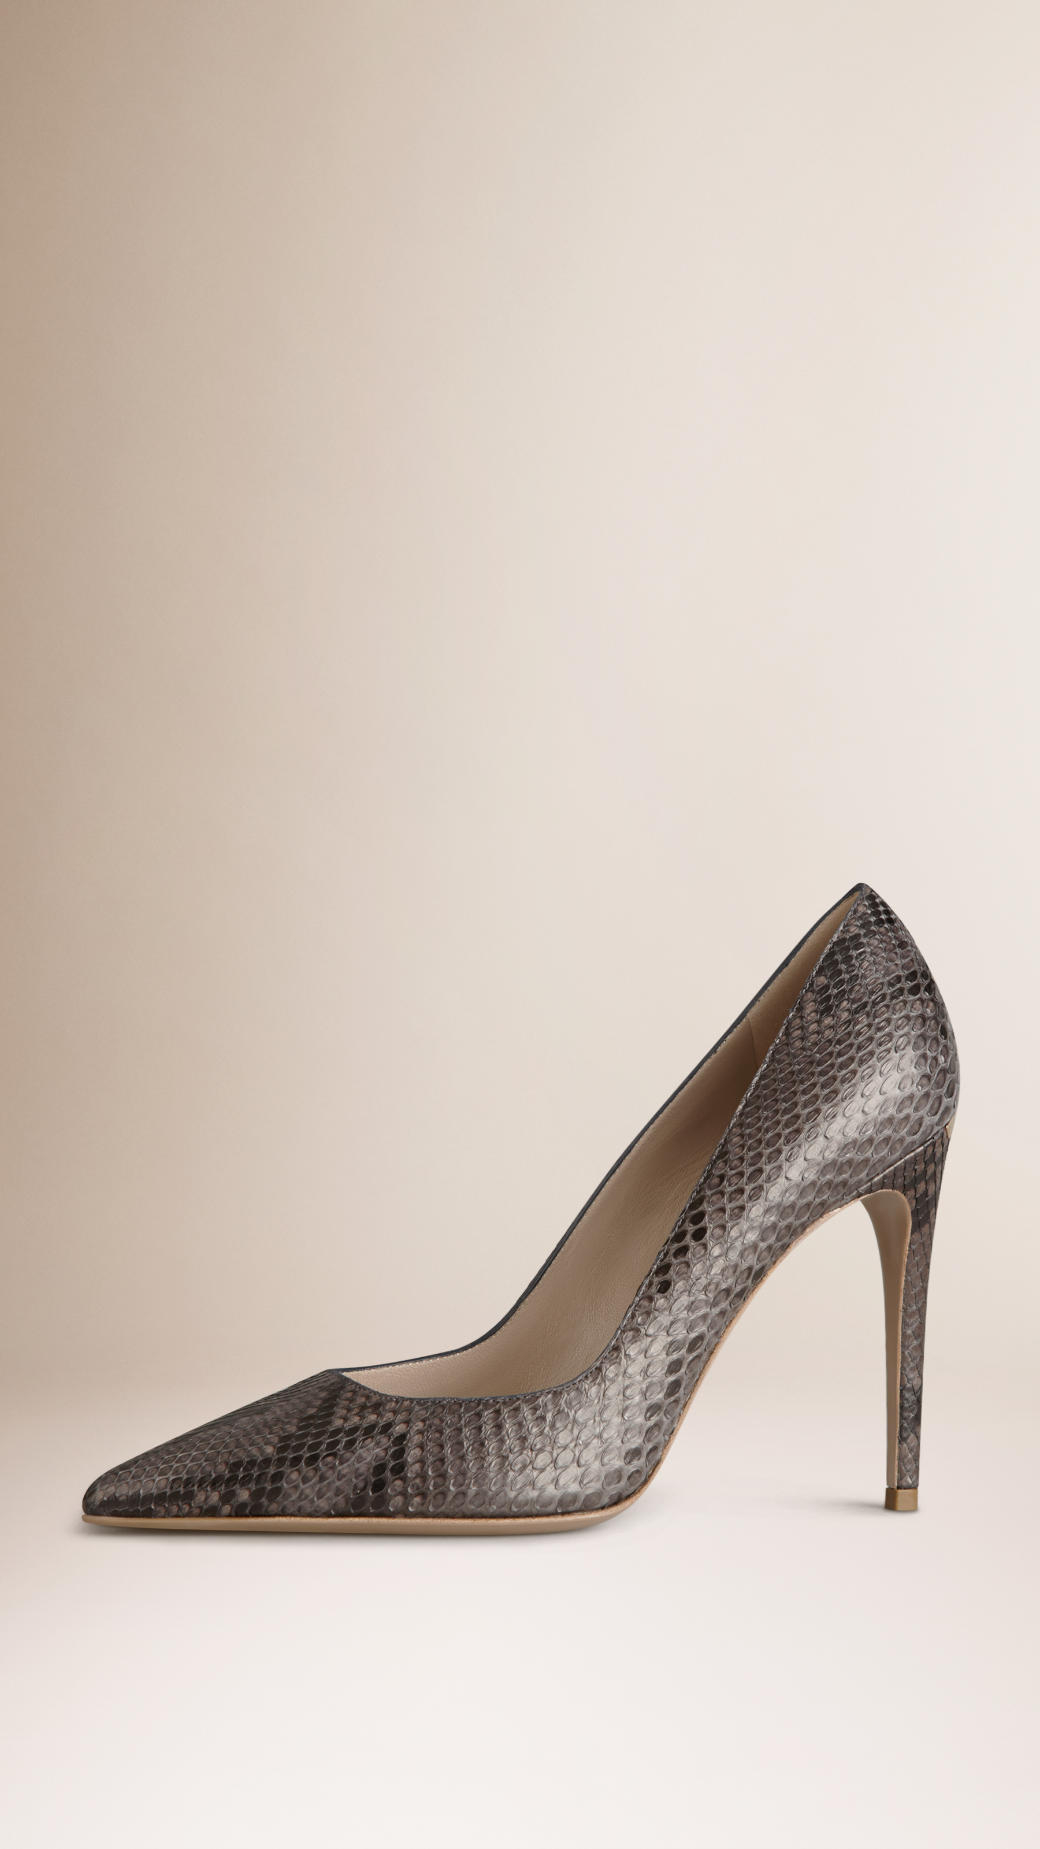 Burberry Python Pointed-Toe Pumps store sale online low cost 56kA0V3J